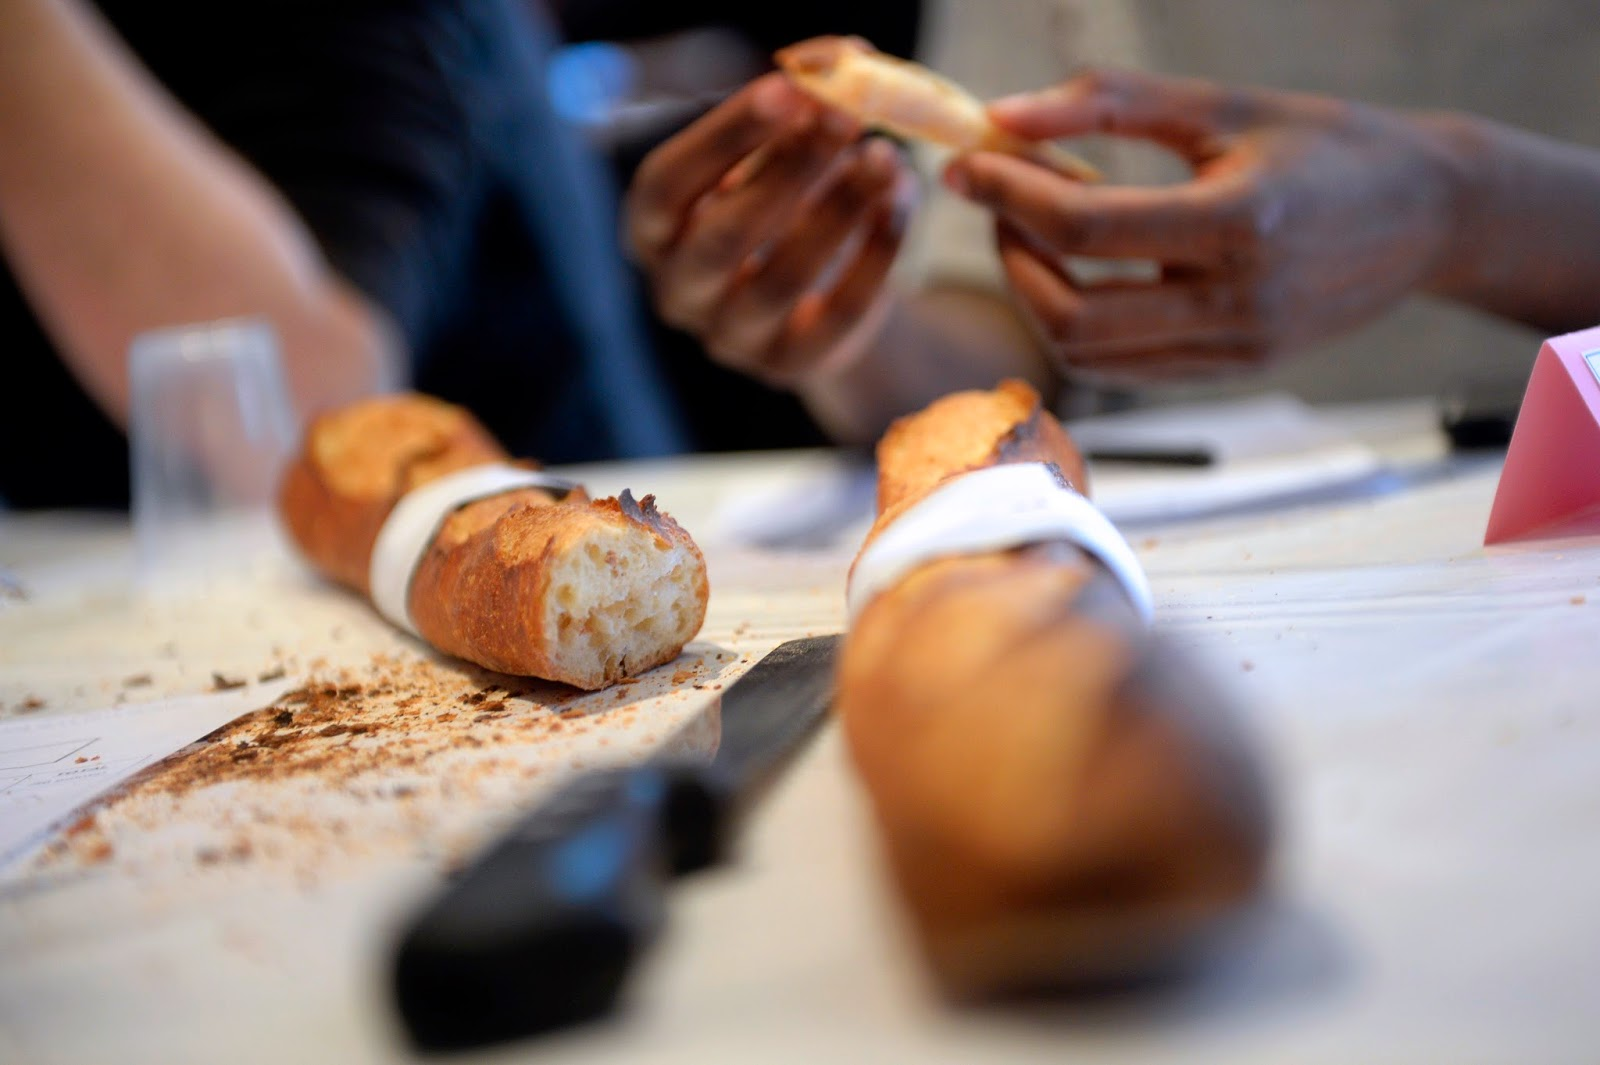 Best Baguette, Baguette, Bread, Bakery, Competition, Contest, France, Paris, Food, Agriculture, Offbeat, Business, Baker, Jury